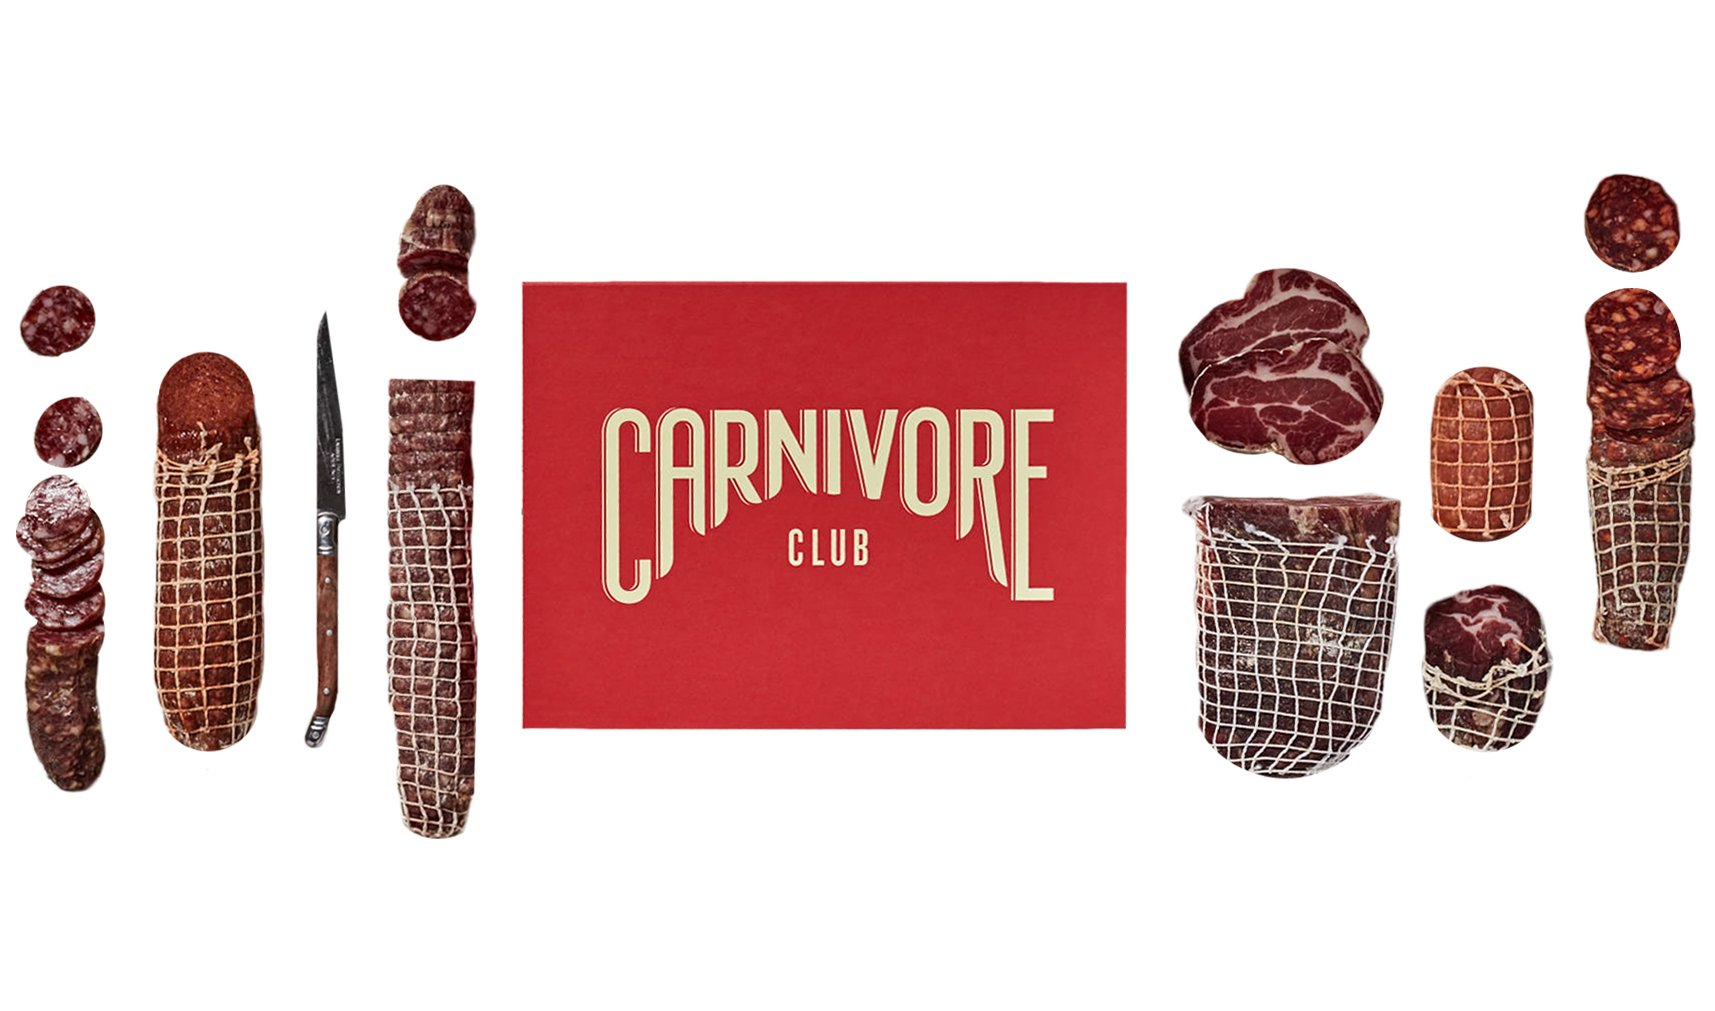 Carnivore Club Gift Box (Gourmet Food Gift) - Food Basket - 4 to 6 Cured Meats - Comes in a Premium Gift Box - Great Gift For Men & Women - Great with Crackers & Cheese & Wine by Carnivore Club